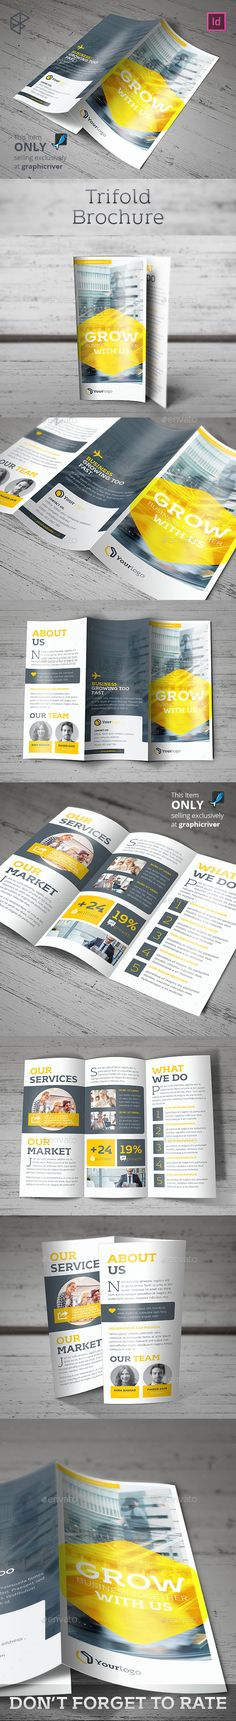 Trifold Brochure Template Brochure Template Brochures And Twins